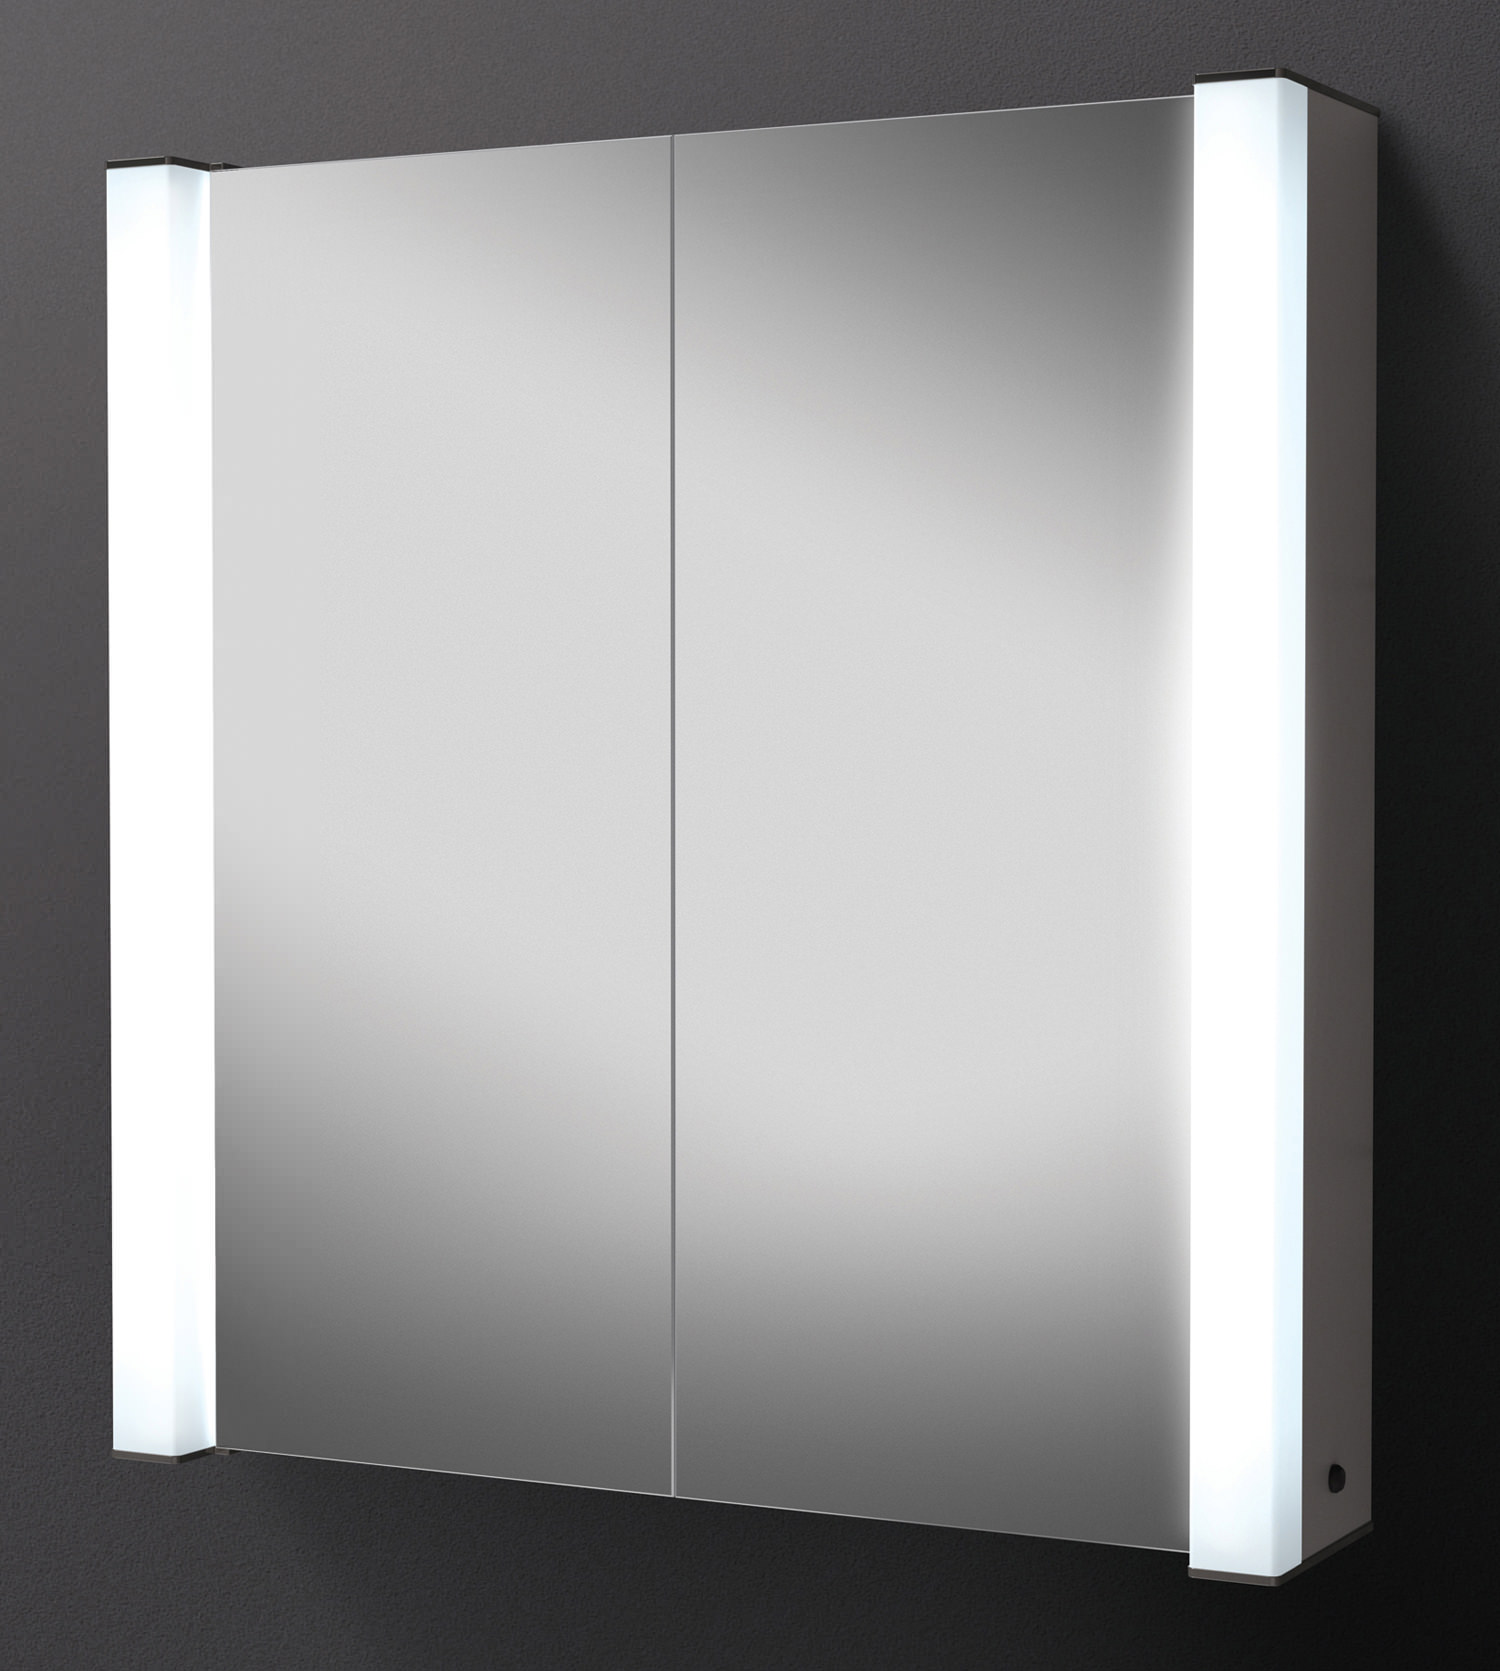 illuminated mirror bathroom cabinets hib photec door illuminated aluminium mirrored 17777